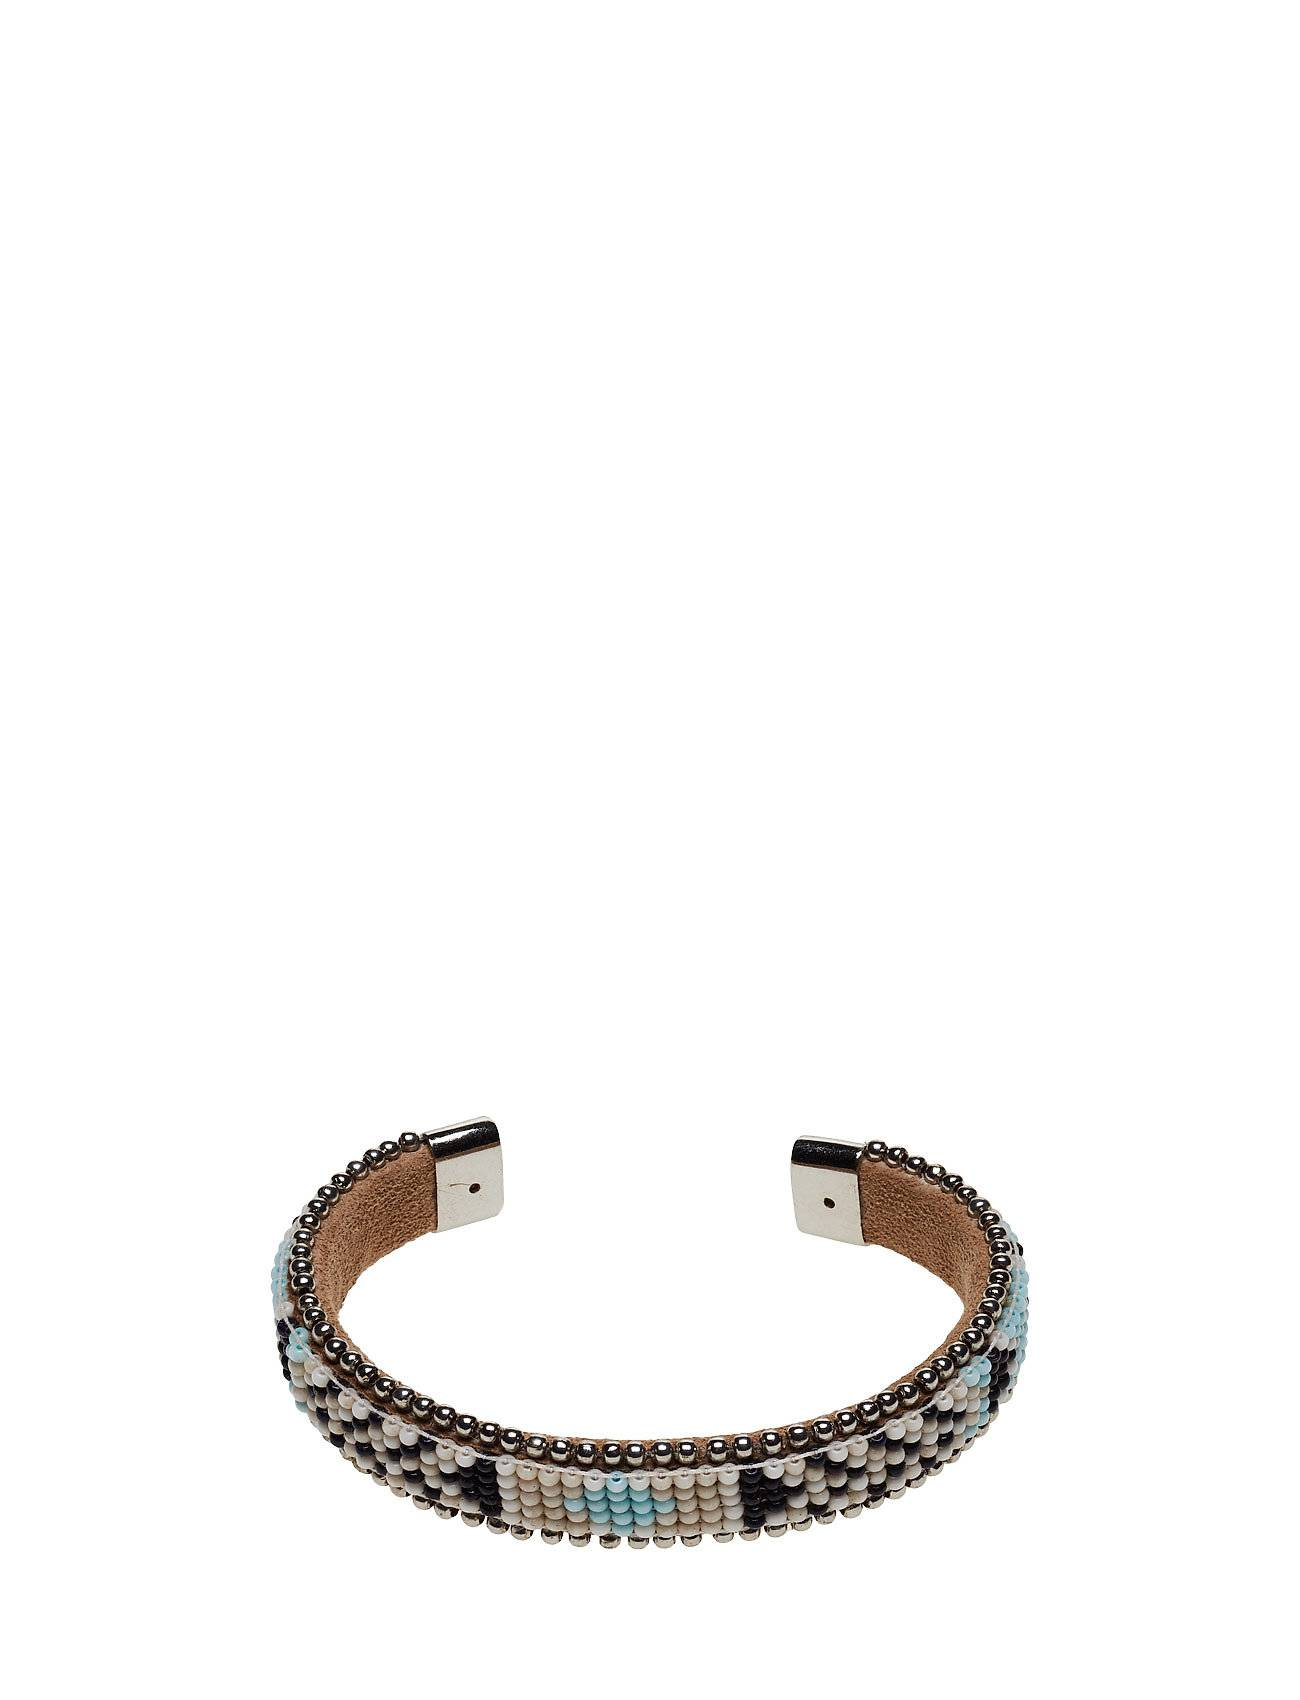 Hunkydory Naya Slim Beaded Cuff